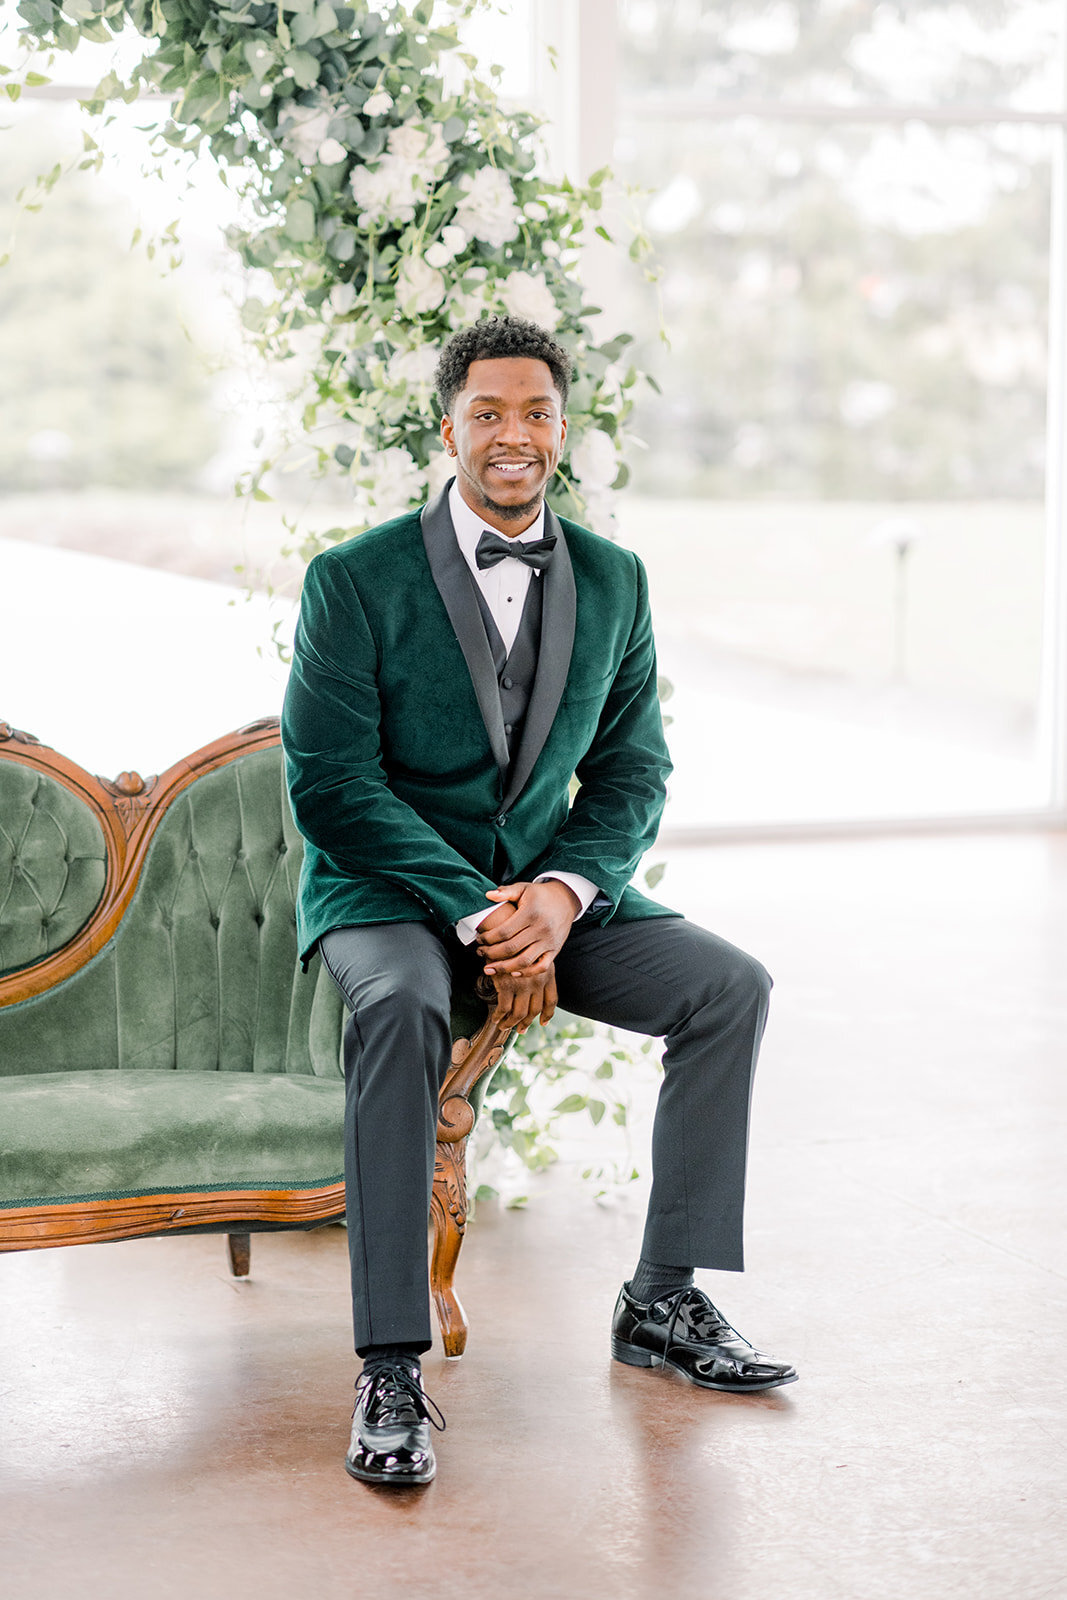 Ritz Charles Emerald Styled Shoot 2020 - Alison Mae Photography - Indianapolis Wedding Photographer-198